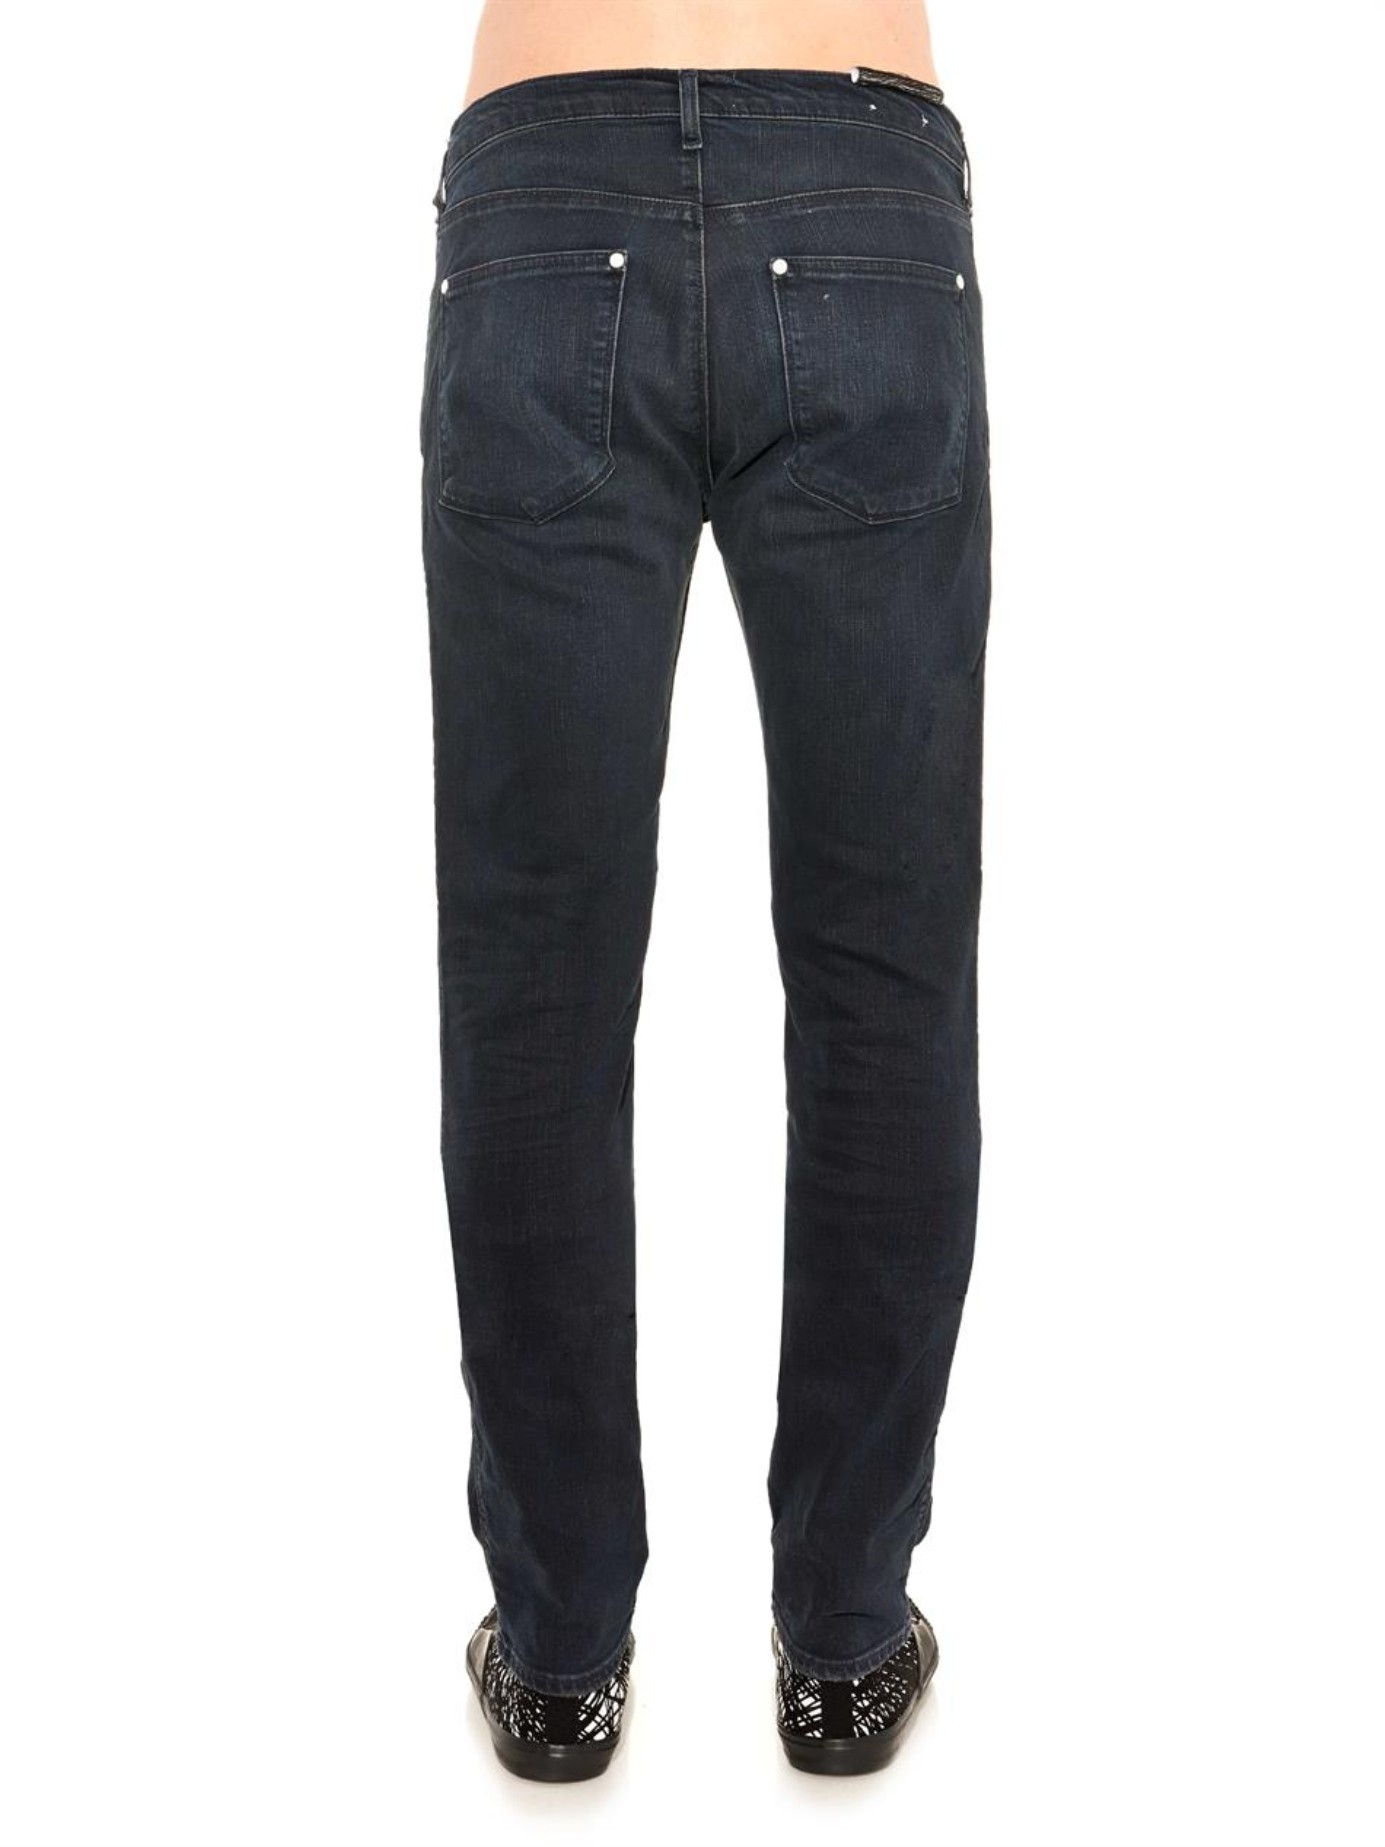 acne studios max man ray slim leg jeans in blue for men lyst. Black Bedroom Furniture Sets. Home Design Ideas